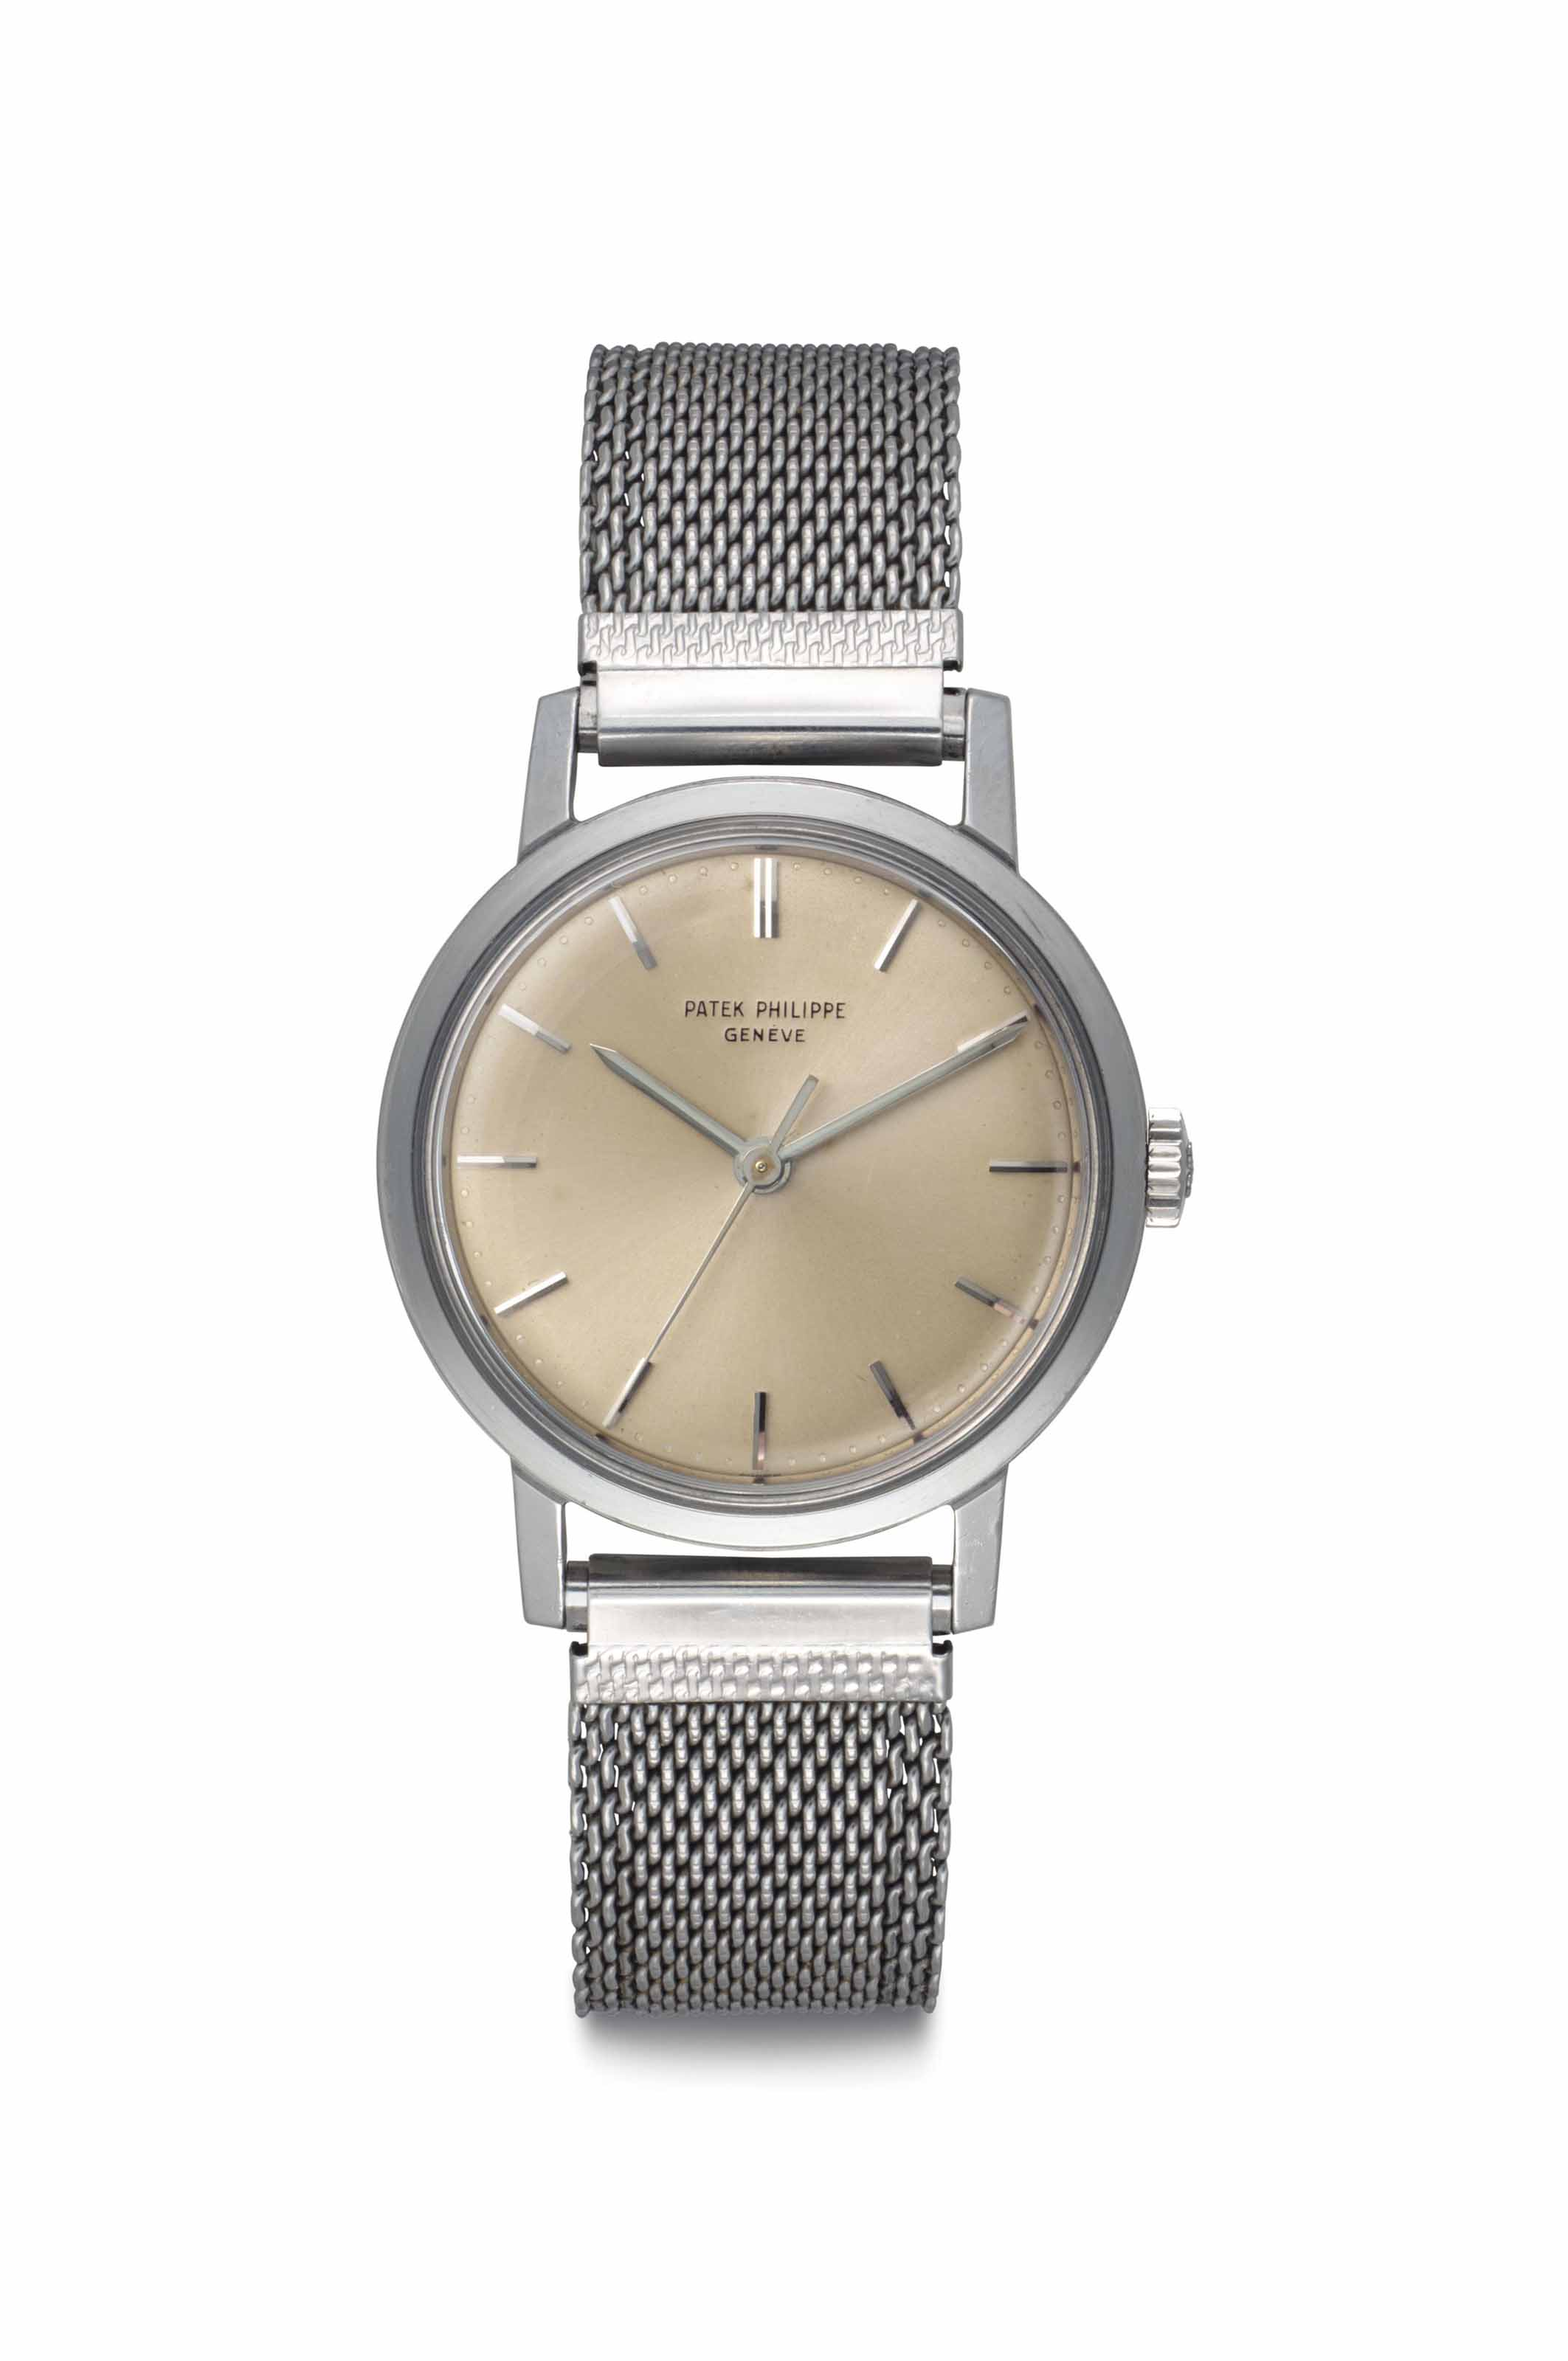 Patek Philippe. A Fine Stainless Steel Wristwatch with Center Seconds